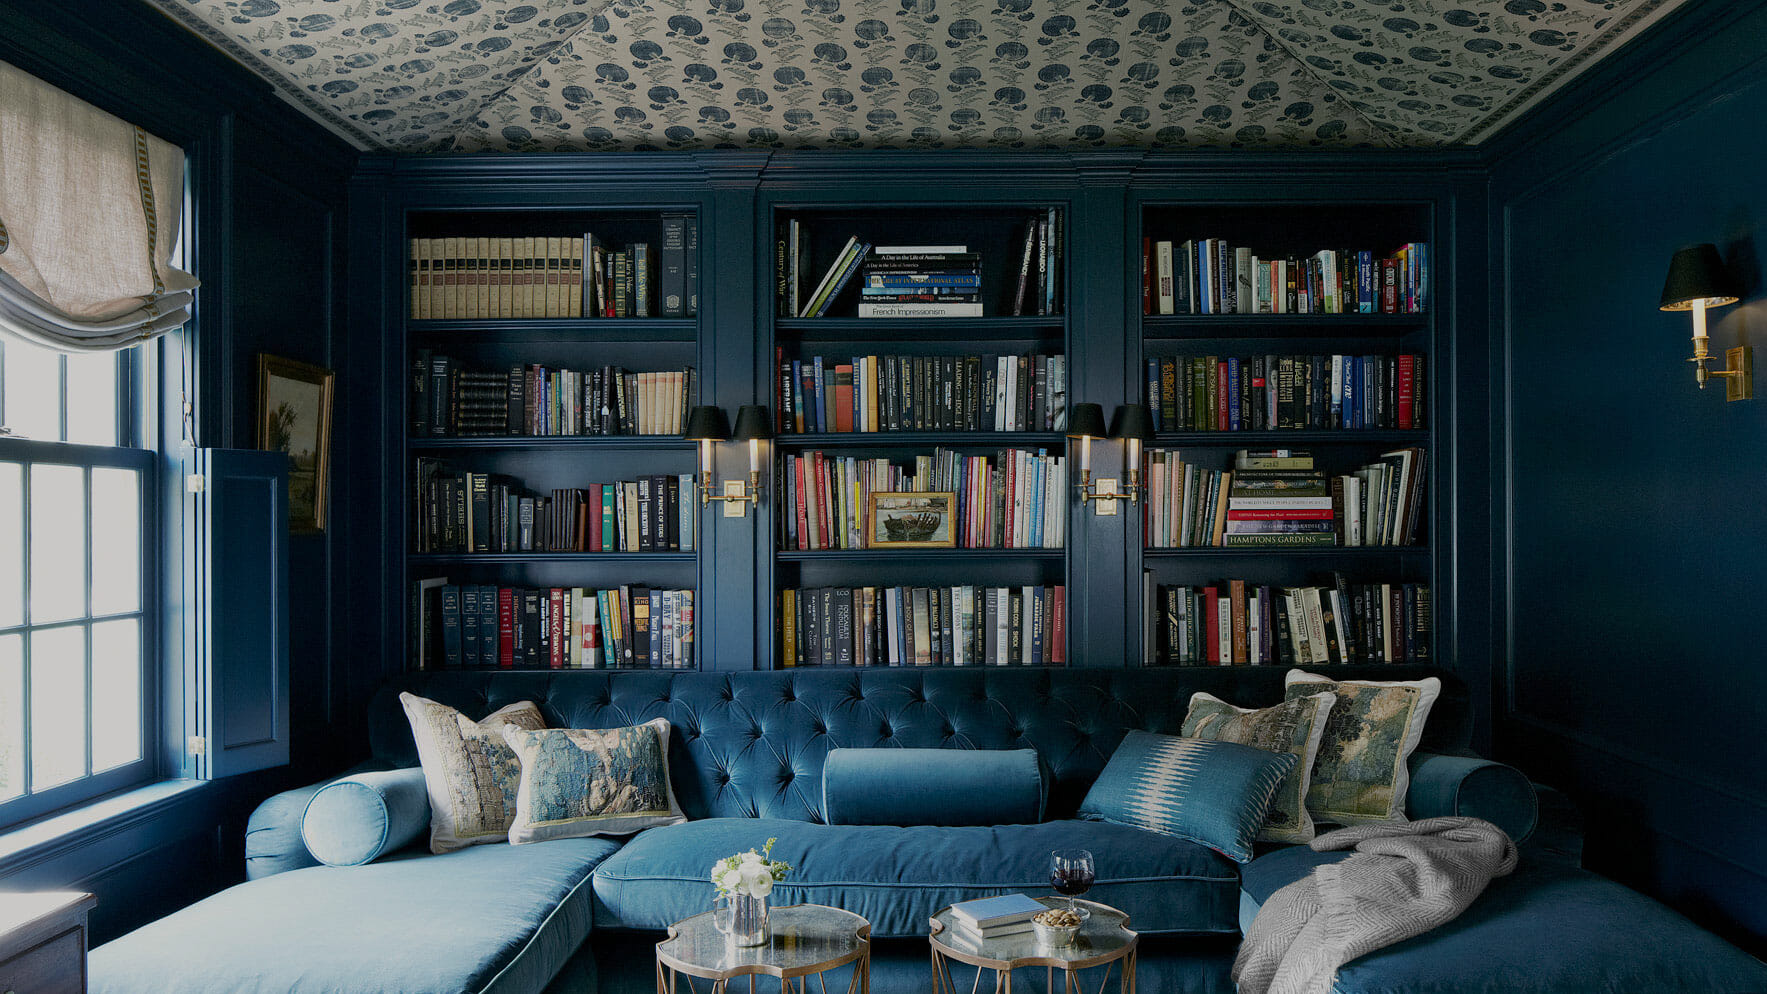 A home study room with blue walls and built-in bookshelves full of books.